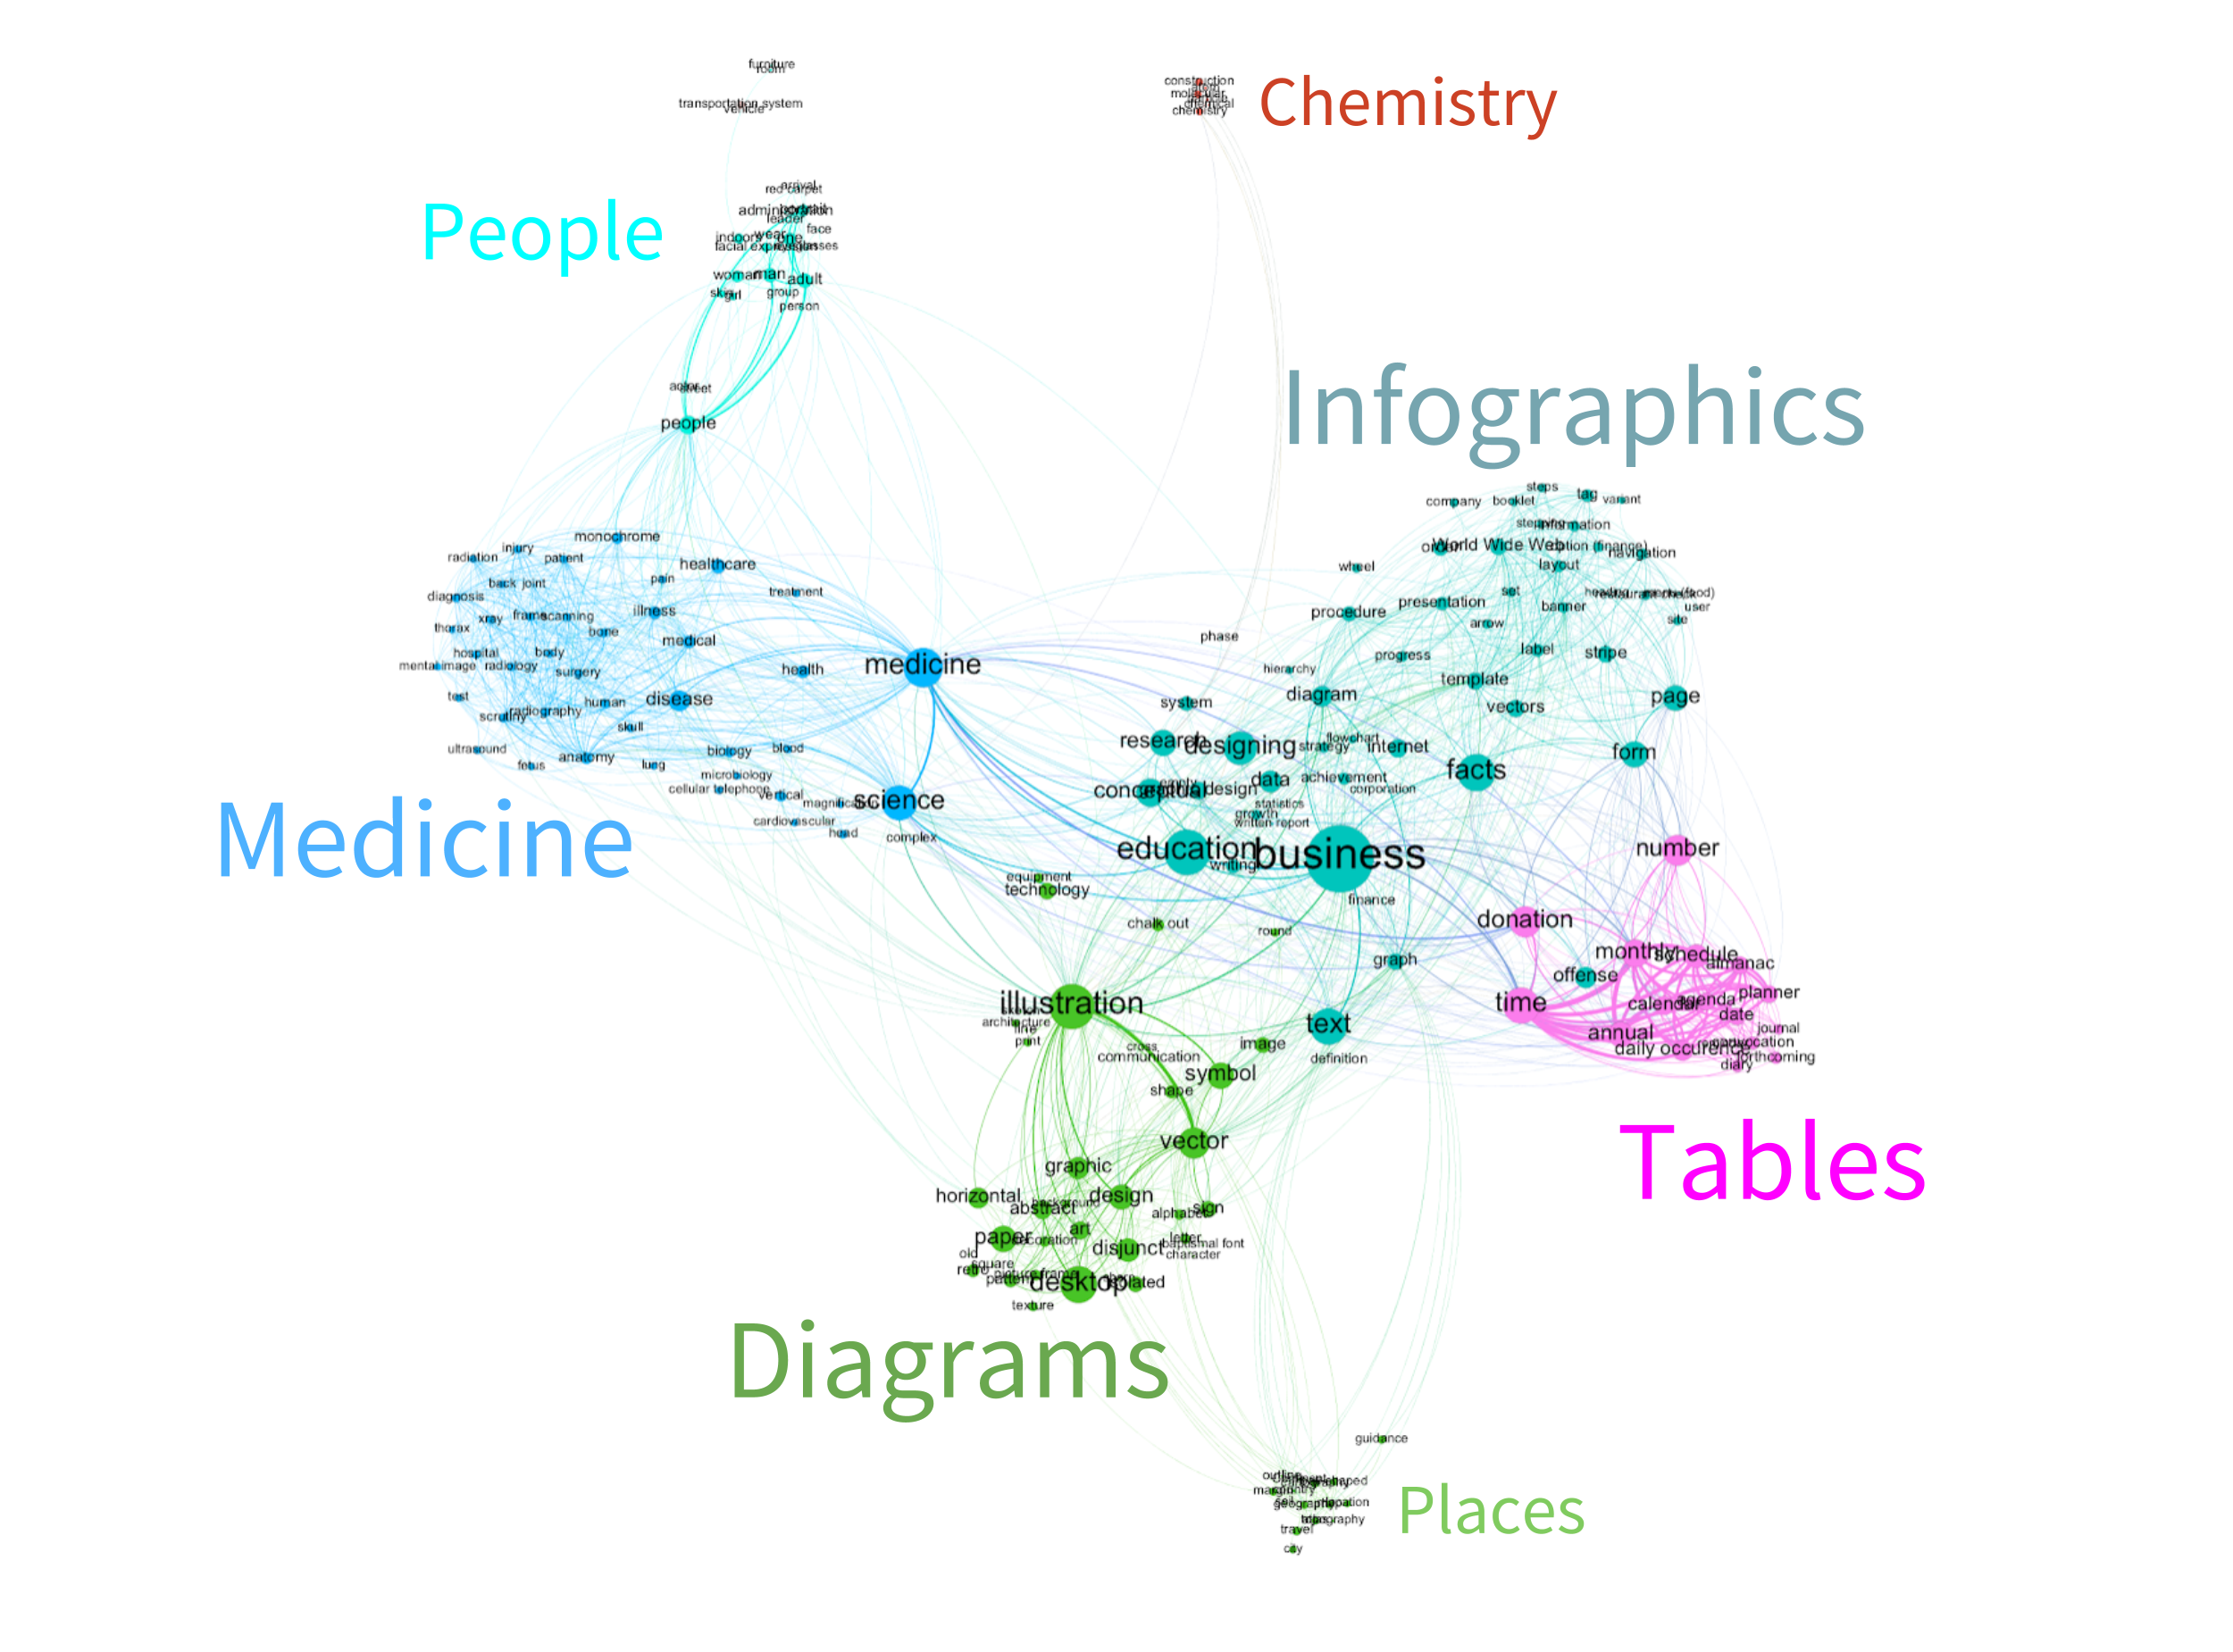 Visualisation of a co-occurrence network of Clarifai image tags, with approximated labels for high-level concept groups.